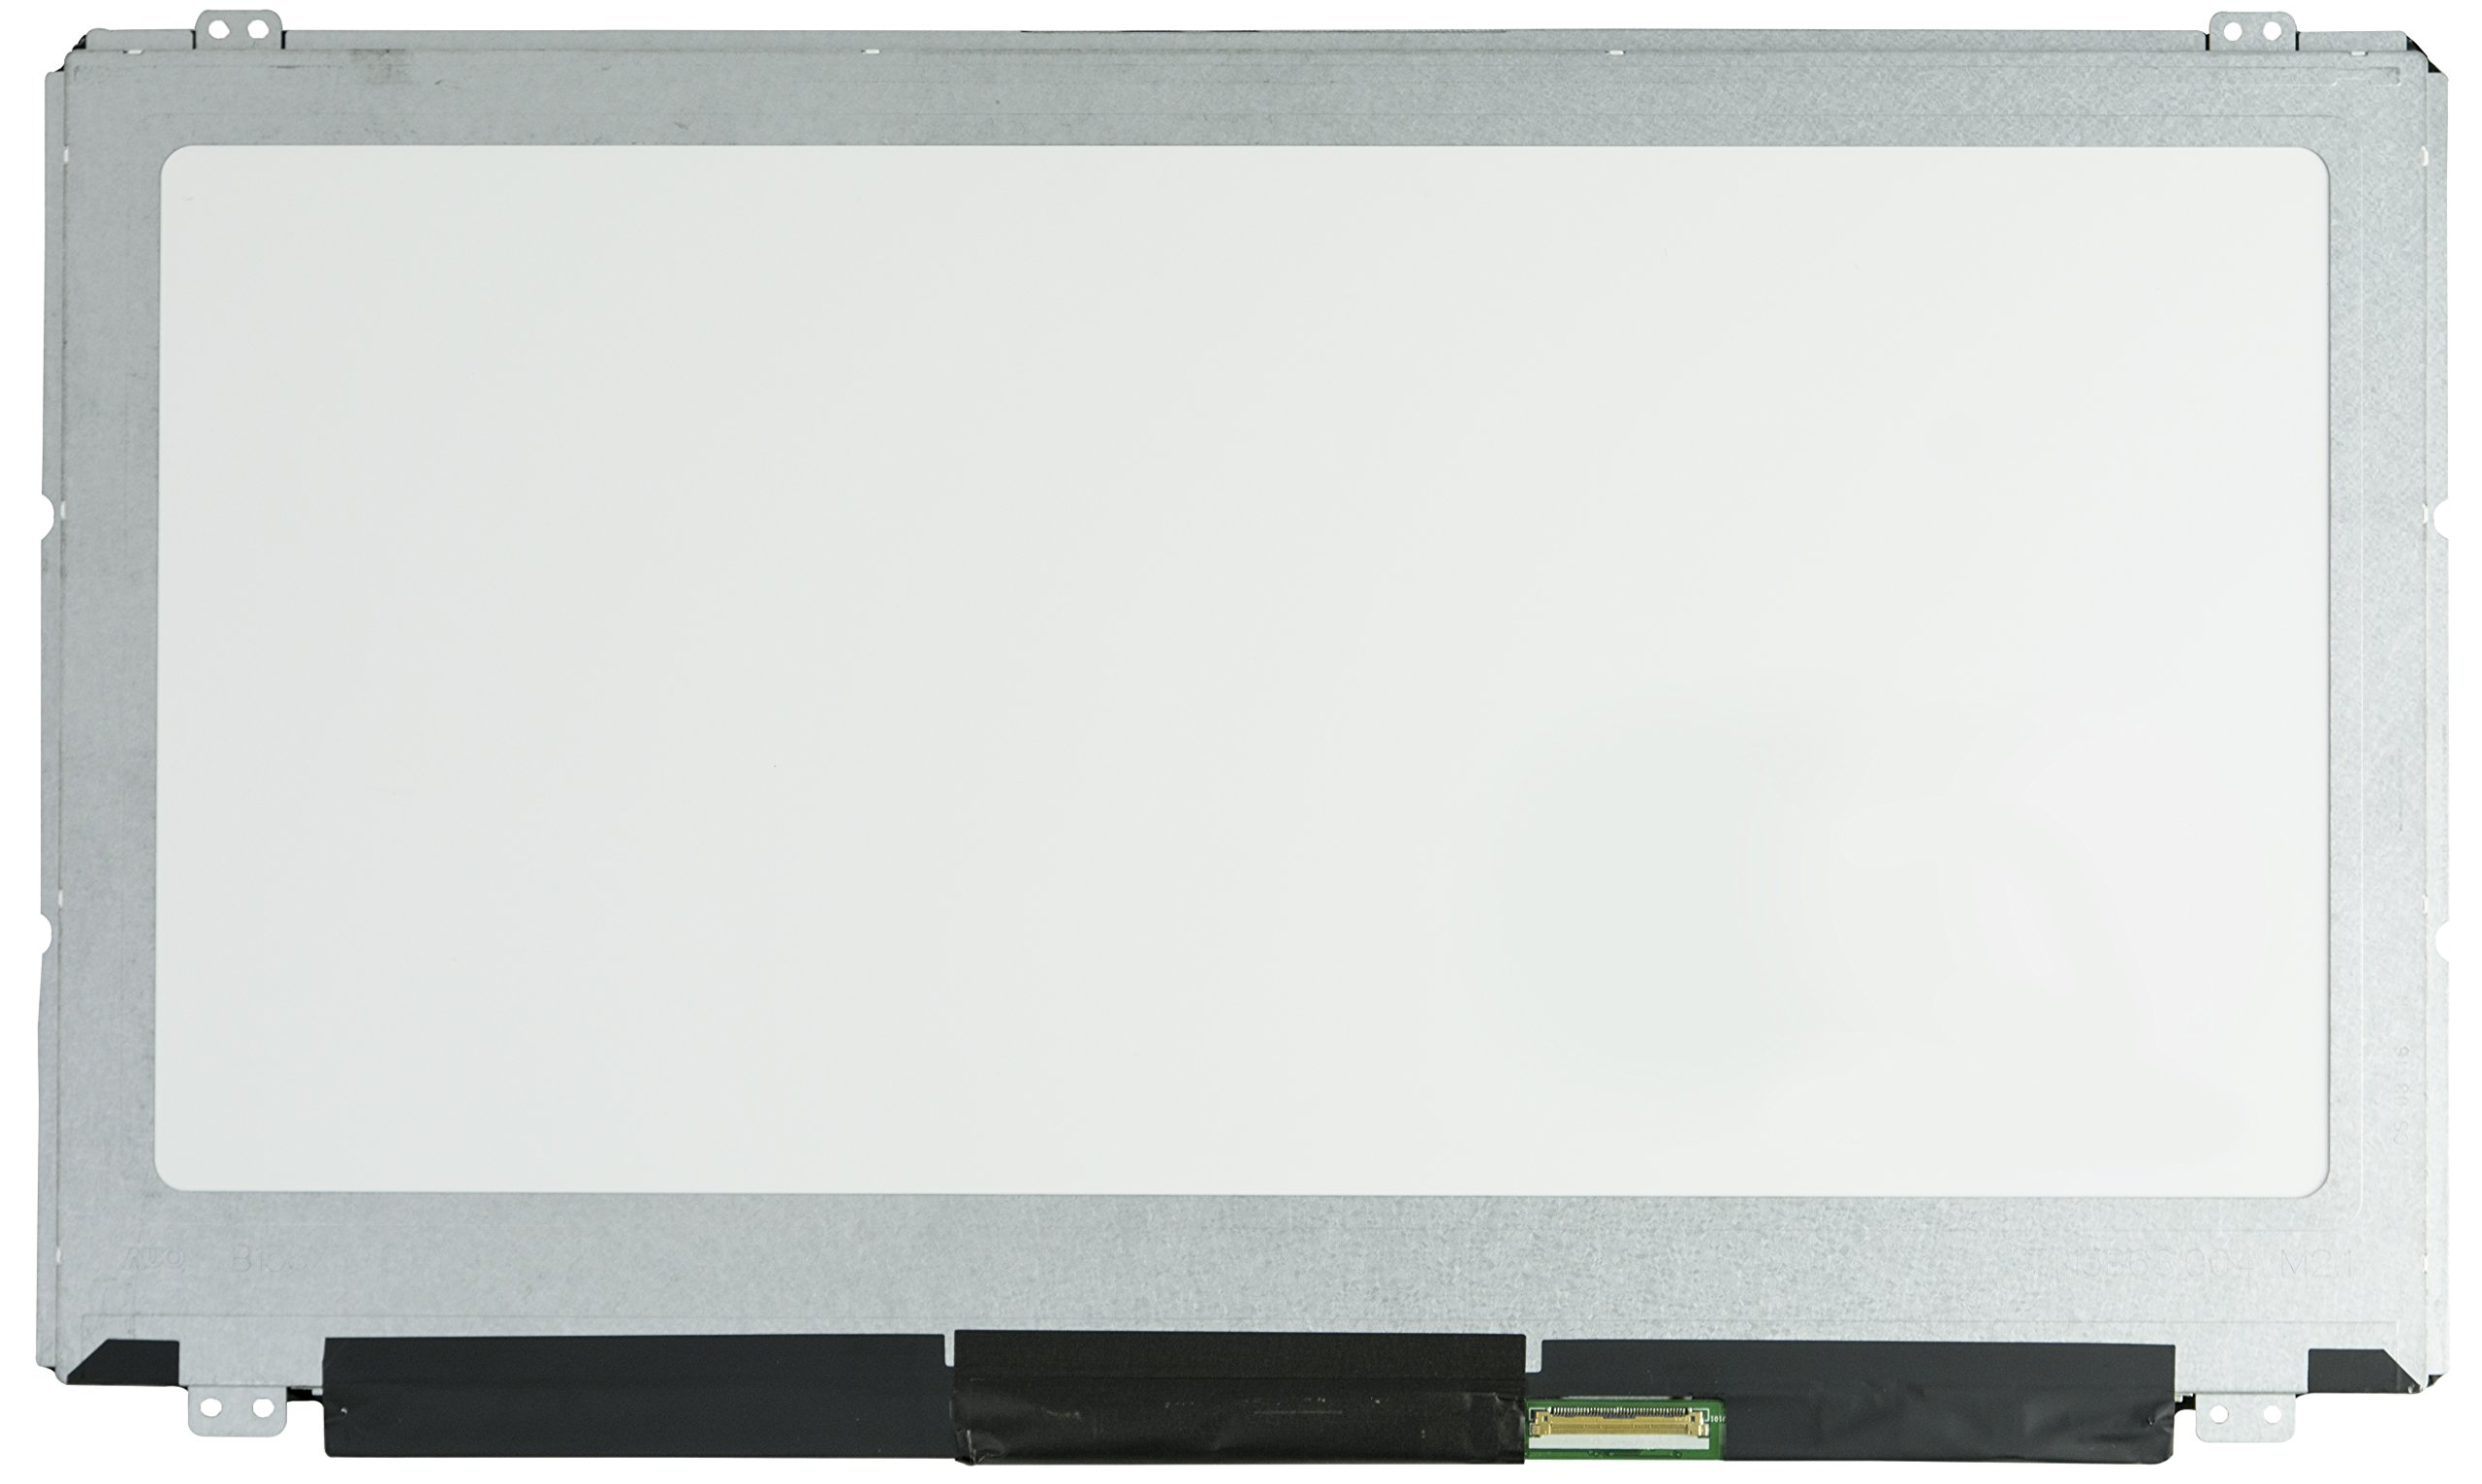 B156XTT01.1 15.6'' LED Backlight Laptop Touch Replacement Screen LTN156AT36-D01 Fits Dell 8CTNG, Dell Inspiron 15-3541, 15-3542 by VIVO (Image #2)